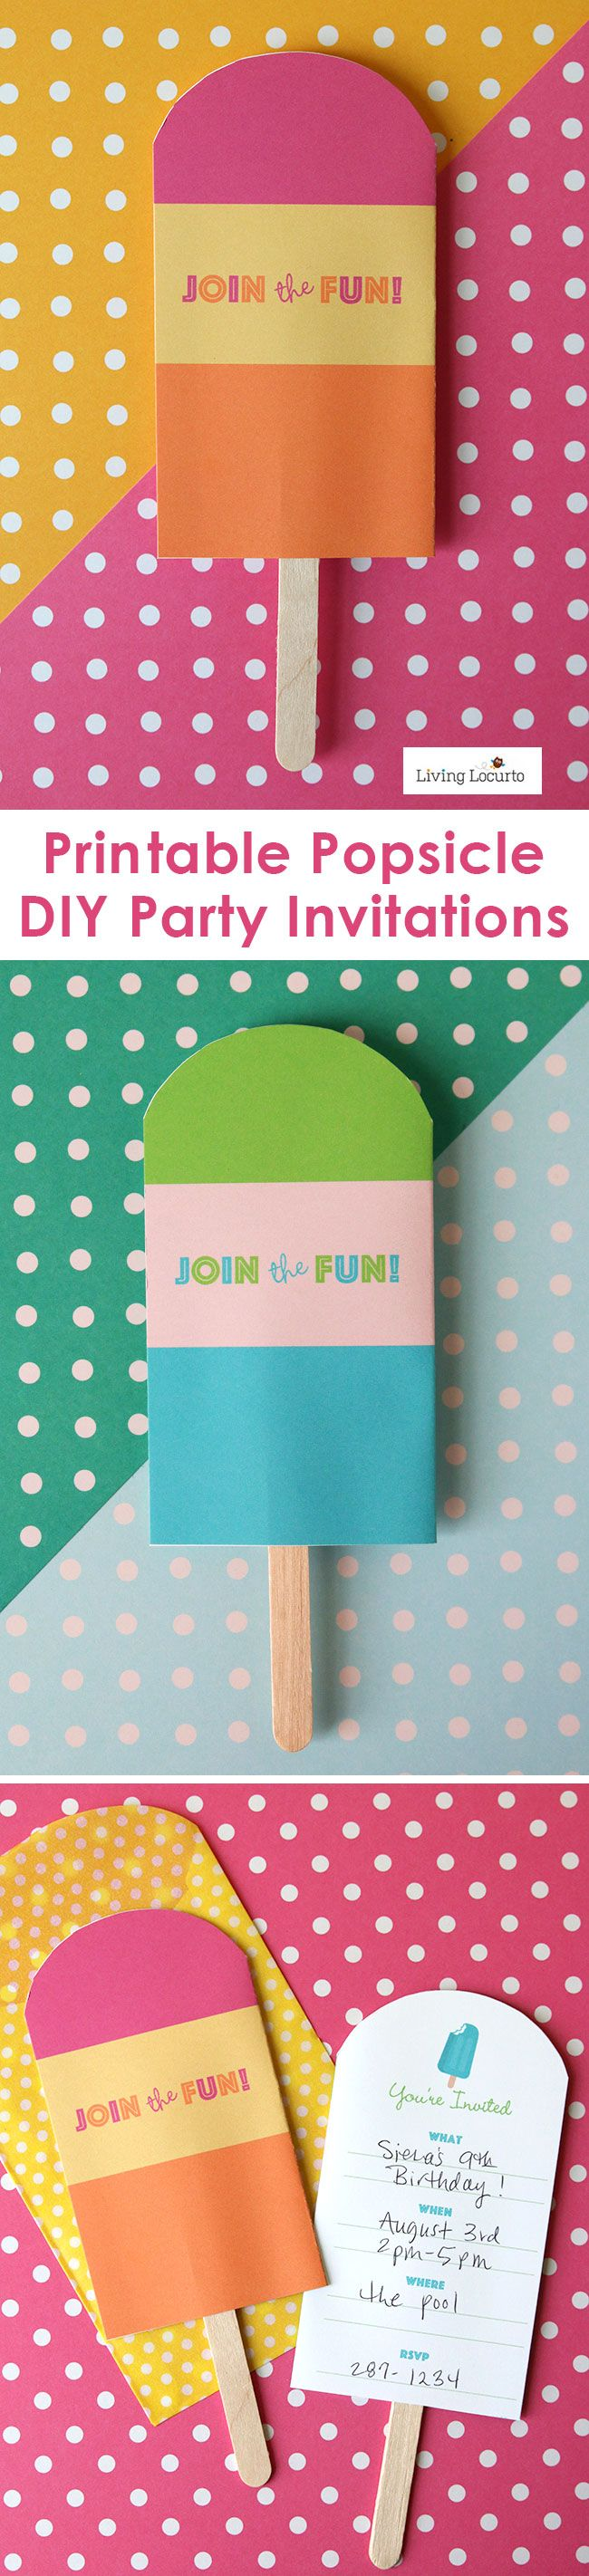 Popsicle Party Free Printable Summer Party Invitation Template – Summer Party Invitation Ideas